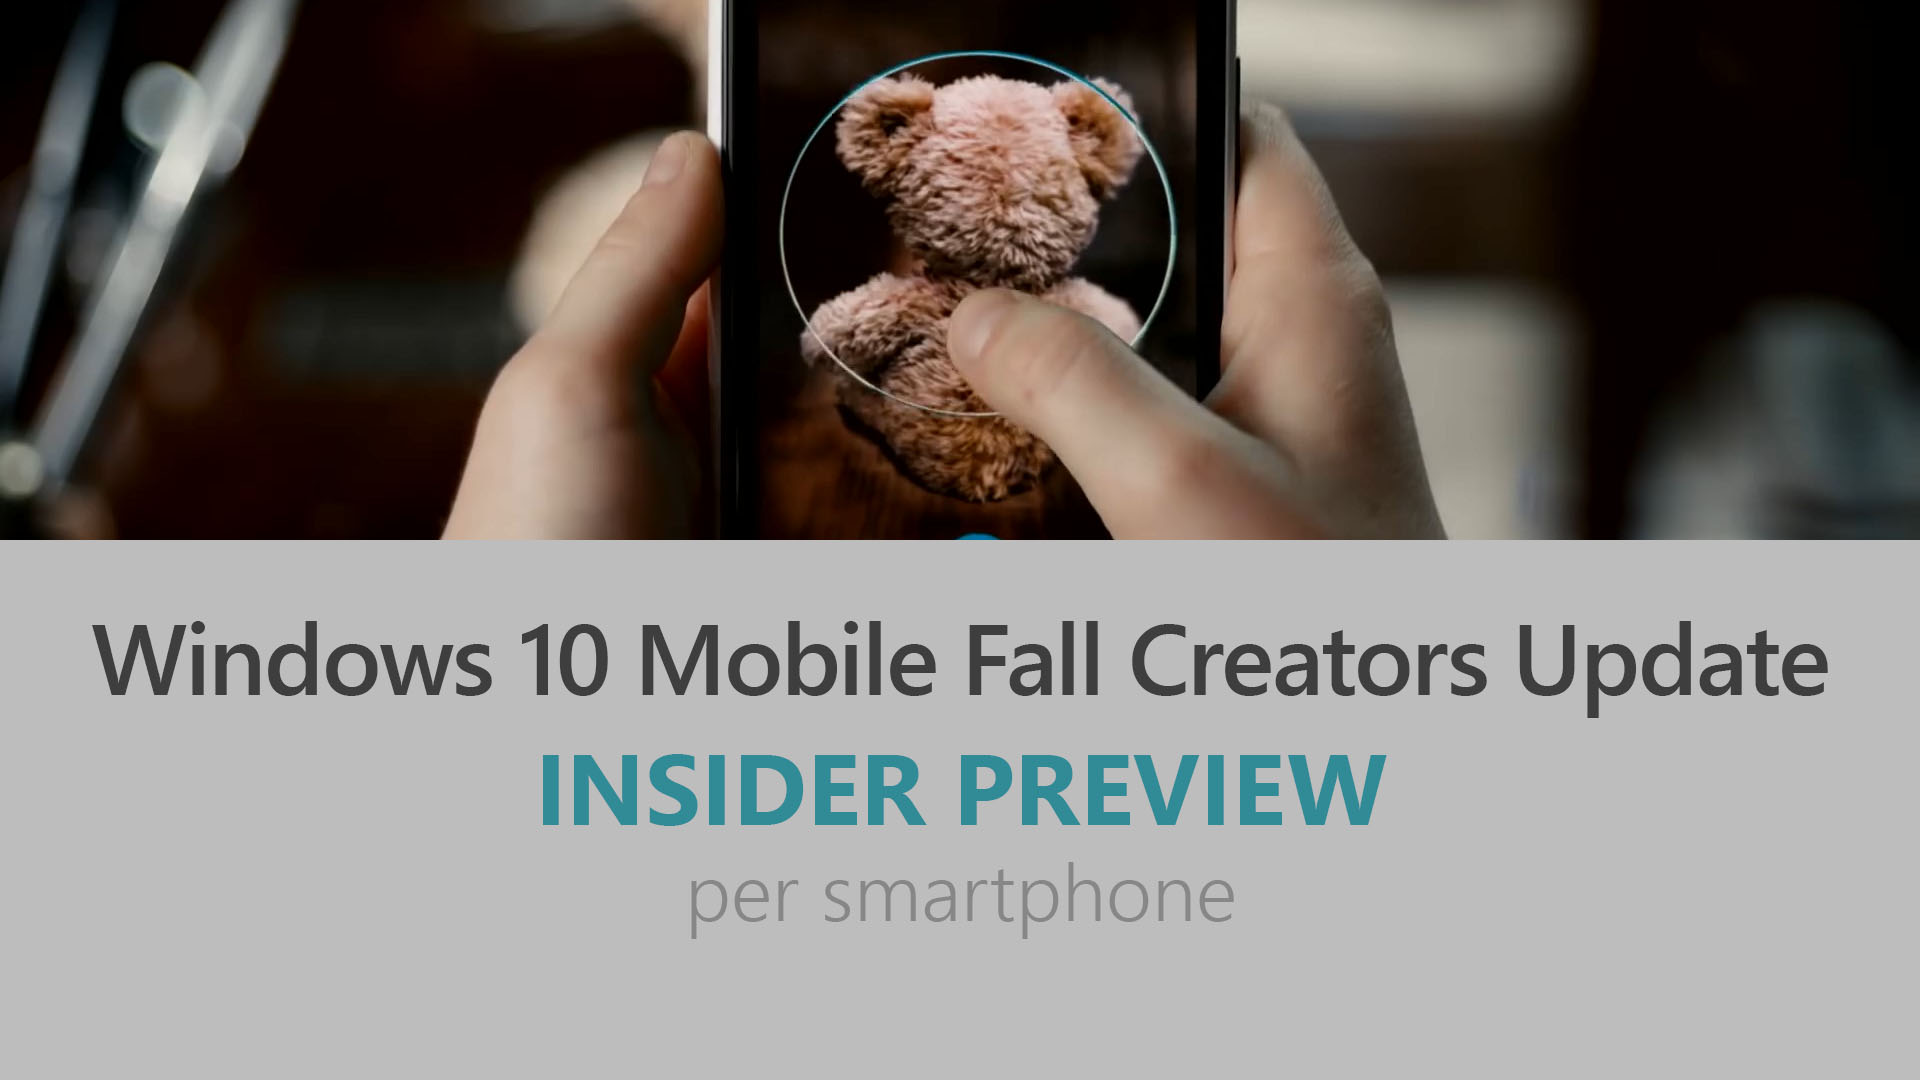 Windows 10 Mobile Fall Creators Update - Insider Preview